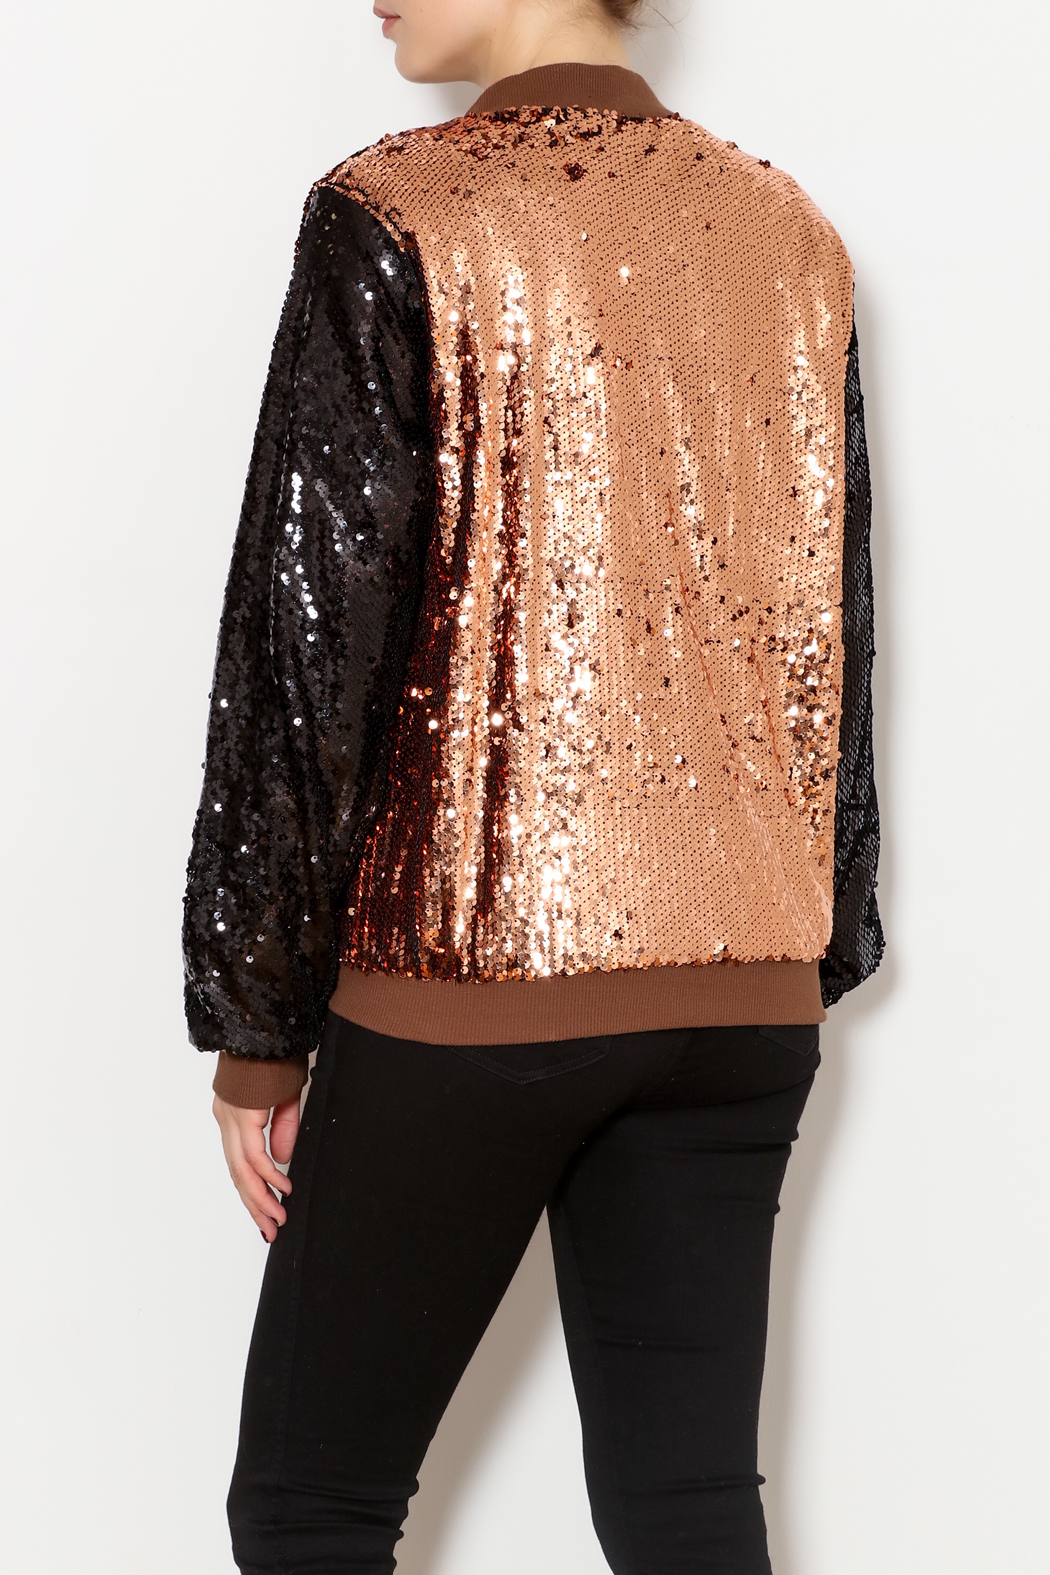 THINK CLOSET Sequined Stunner Jacket - Back Cropped Image